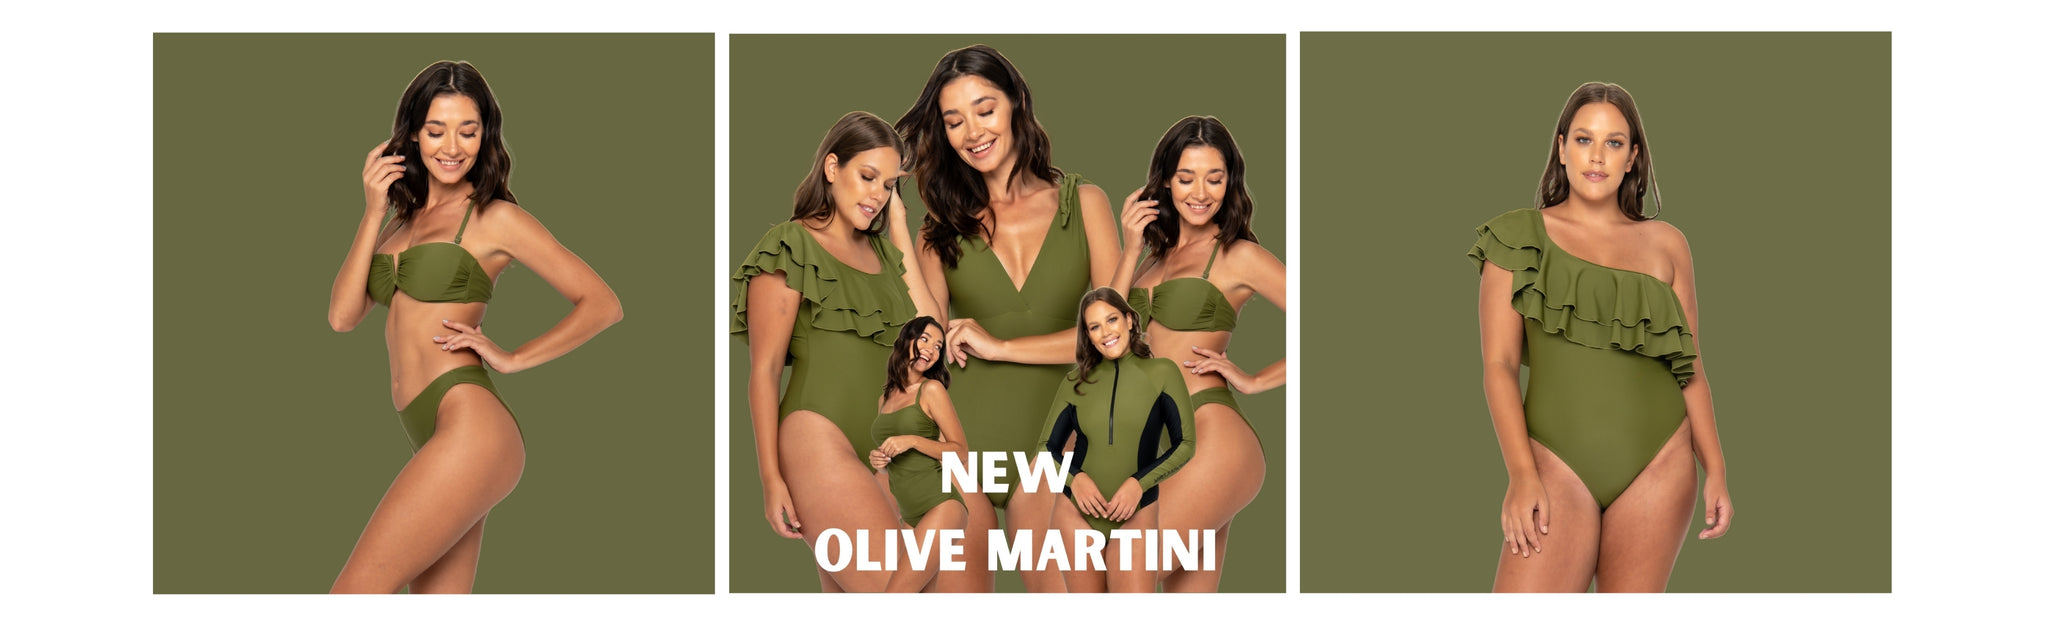 Girls wearing Olive Martini Print From Infamous Swim